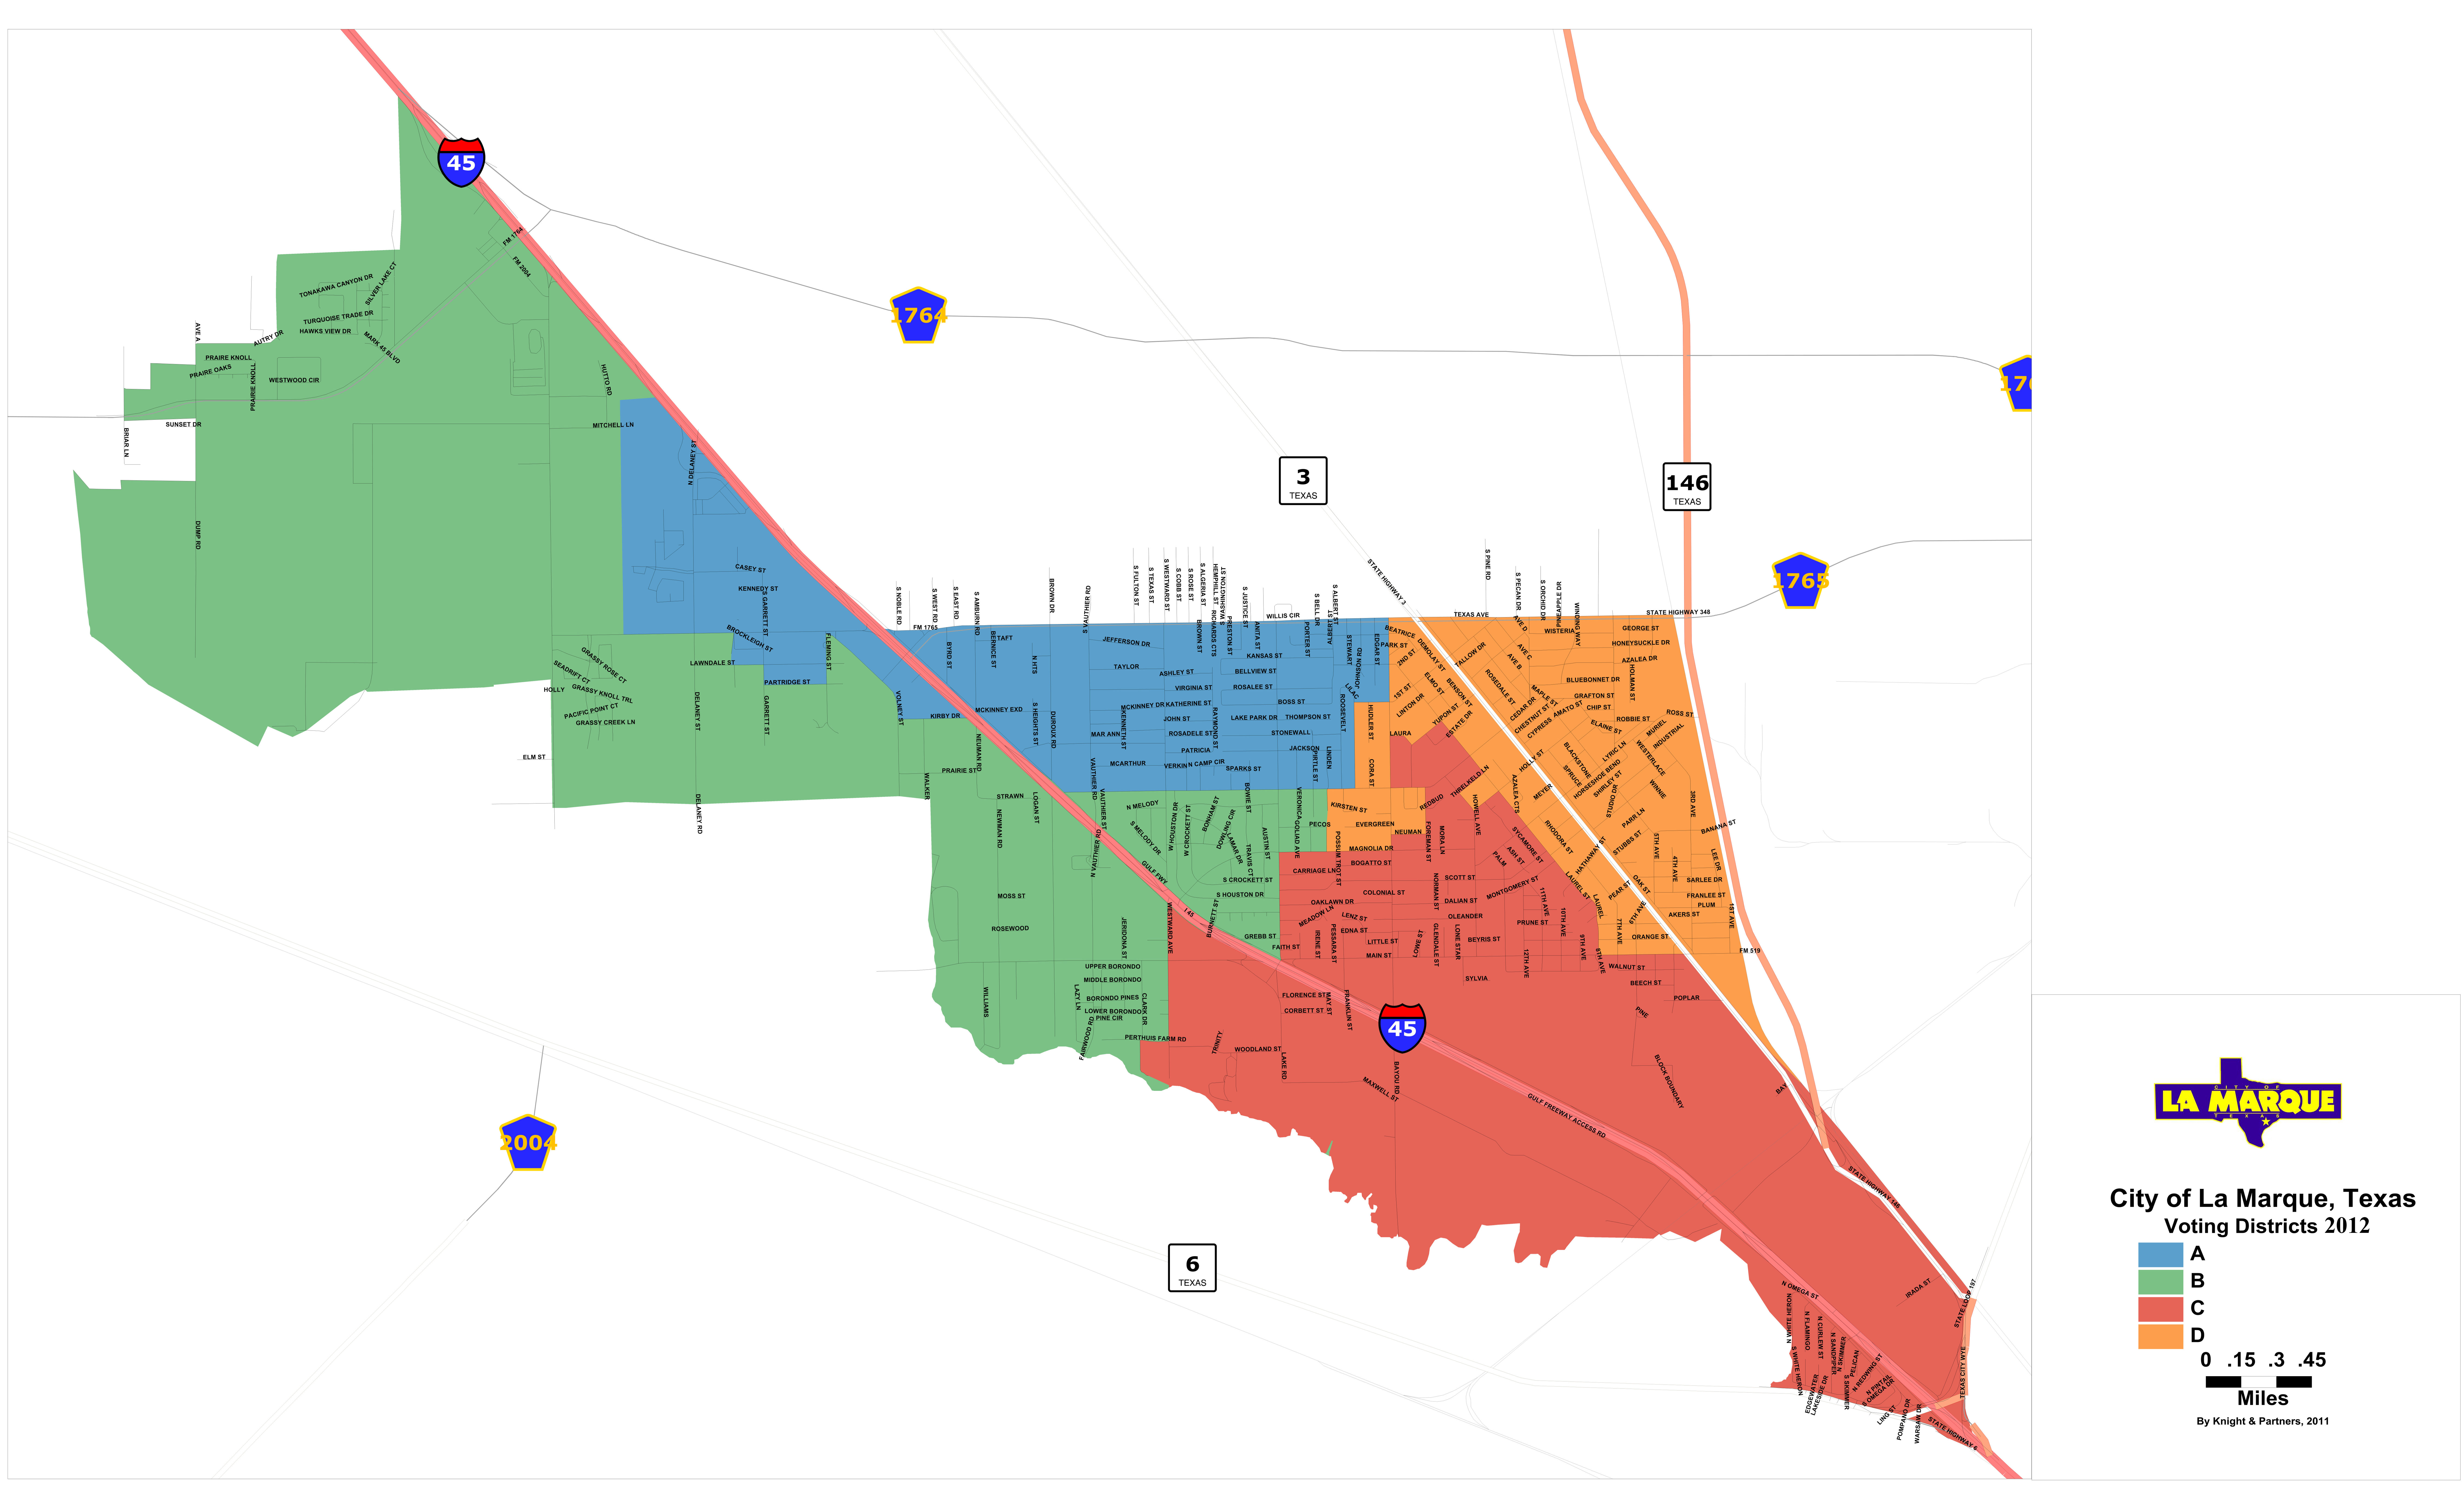 2012 Voting District Map